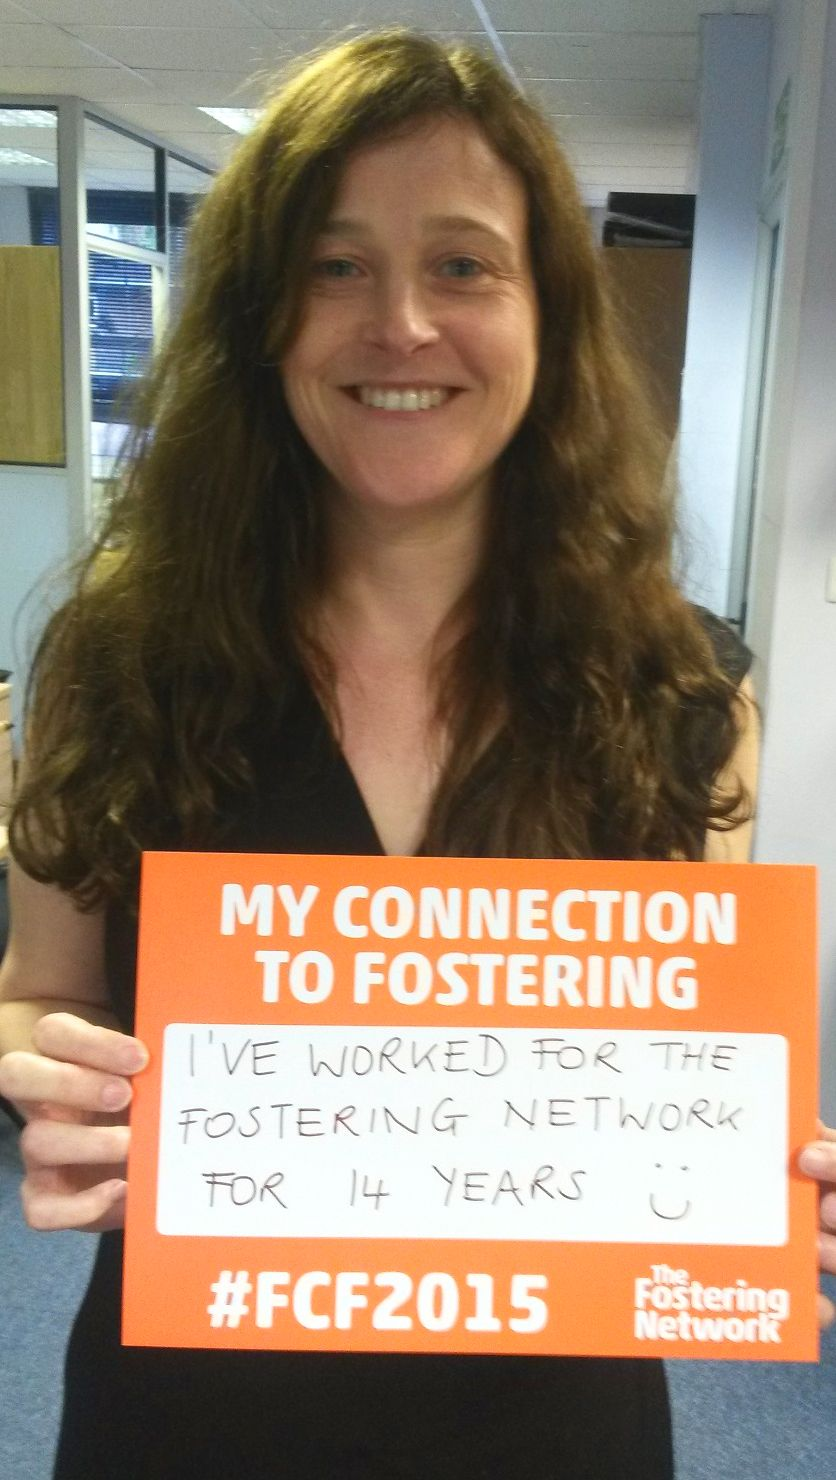 Jackie Sanders is The Fostering Network's director for communications and public affairs. She has been one of the key driving forces behind Foster Care Fortnight for over a decade.